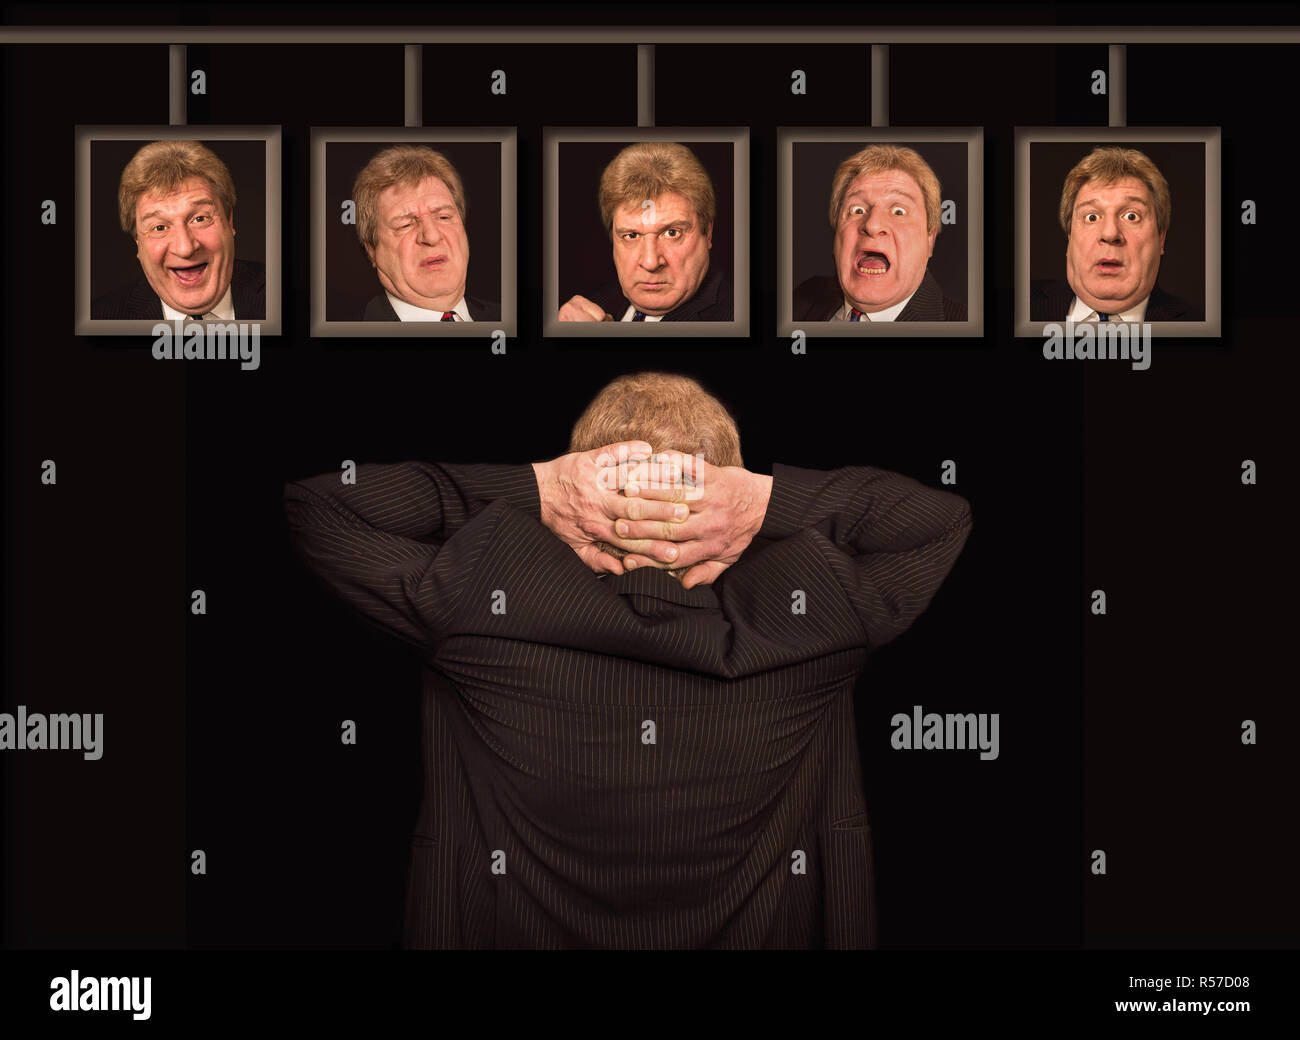 The senior european man in front of posters with his faces. Stock Photo